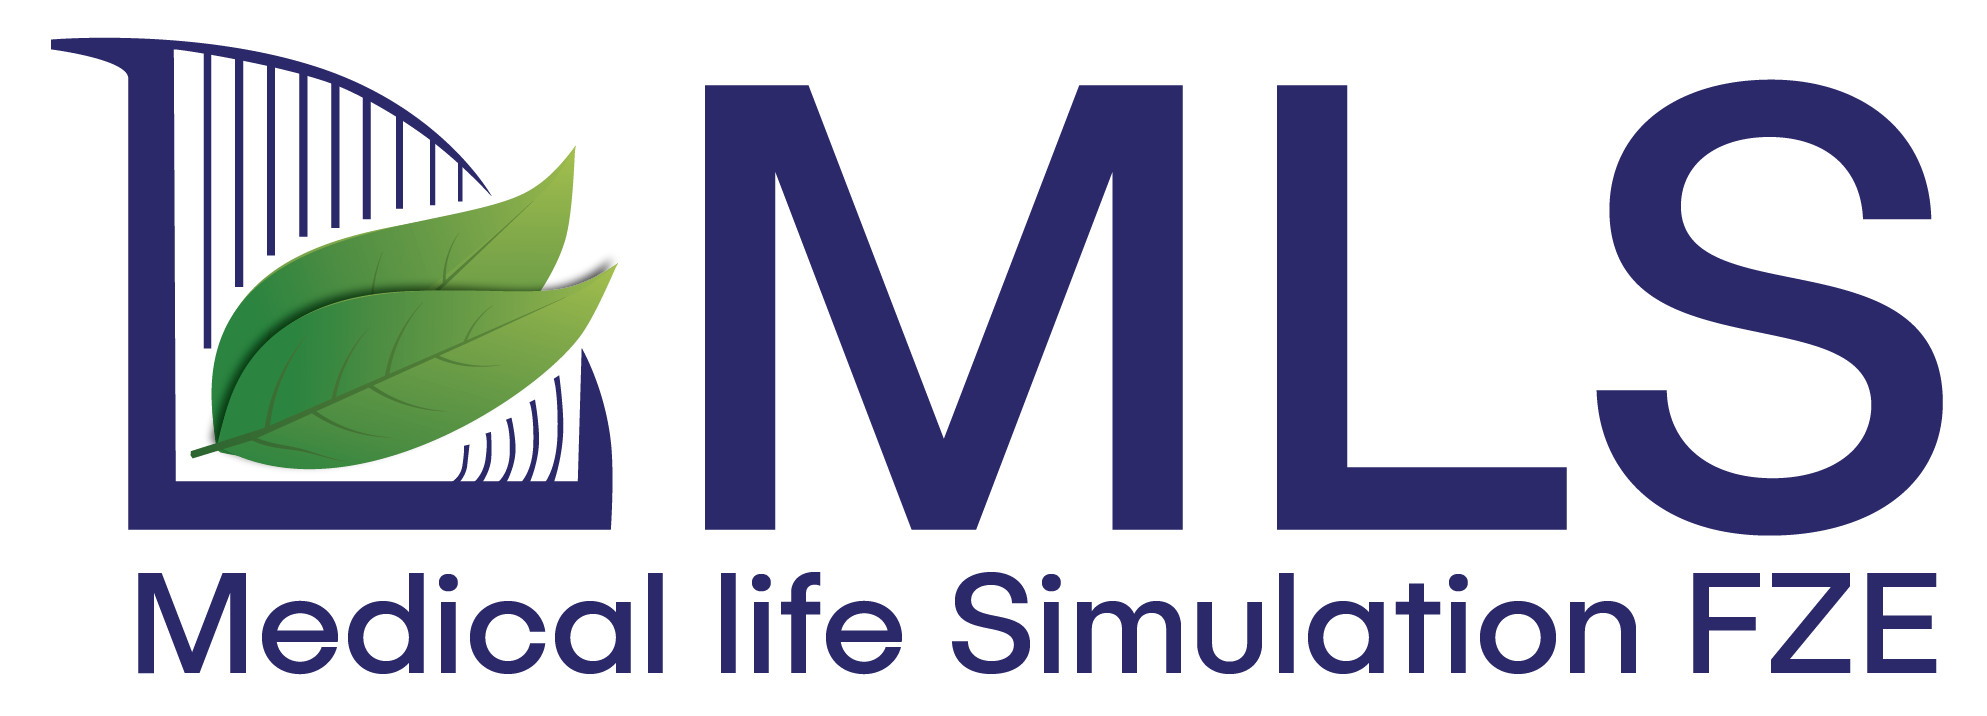 Medical Life Simulation | Dubai UAE